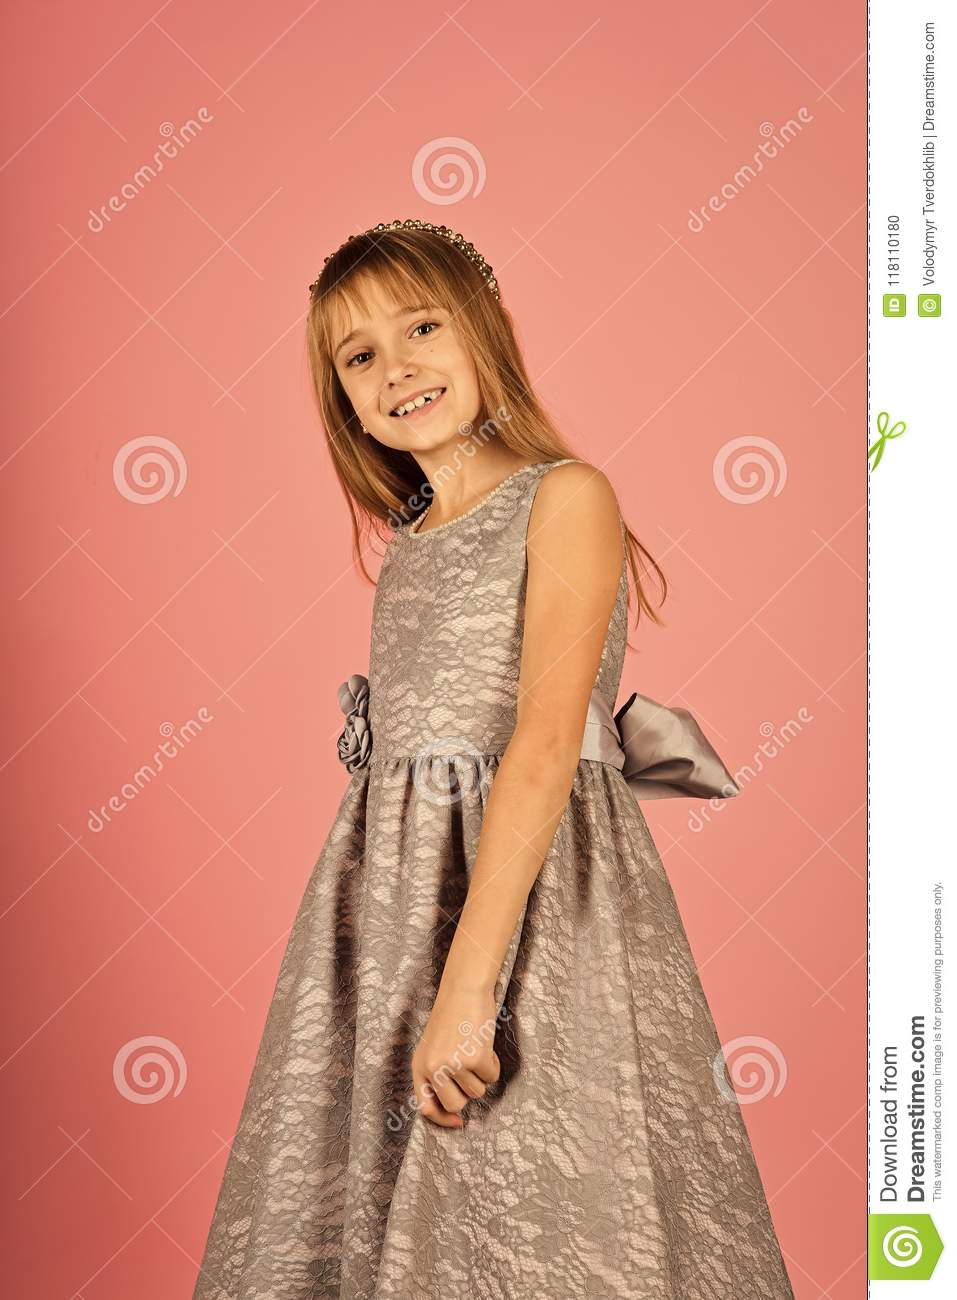 d4b0a3cdd443 Little girl face portrait in your advertisnent. Child girl in stylish  glamour dress, elegance. Look, hairdresser, makeup. Fashion model on pink  background, ...